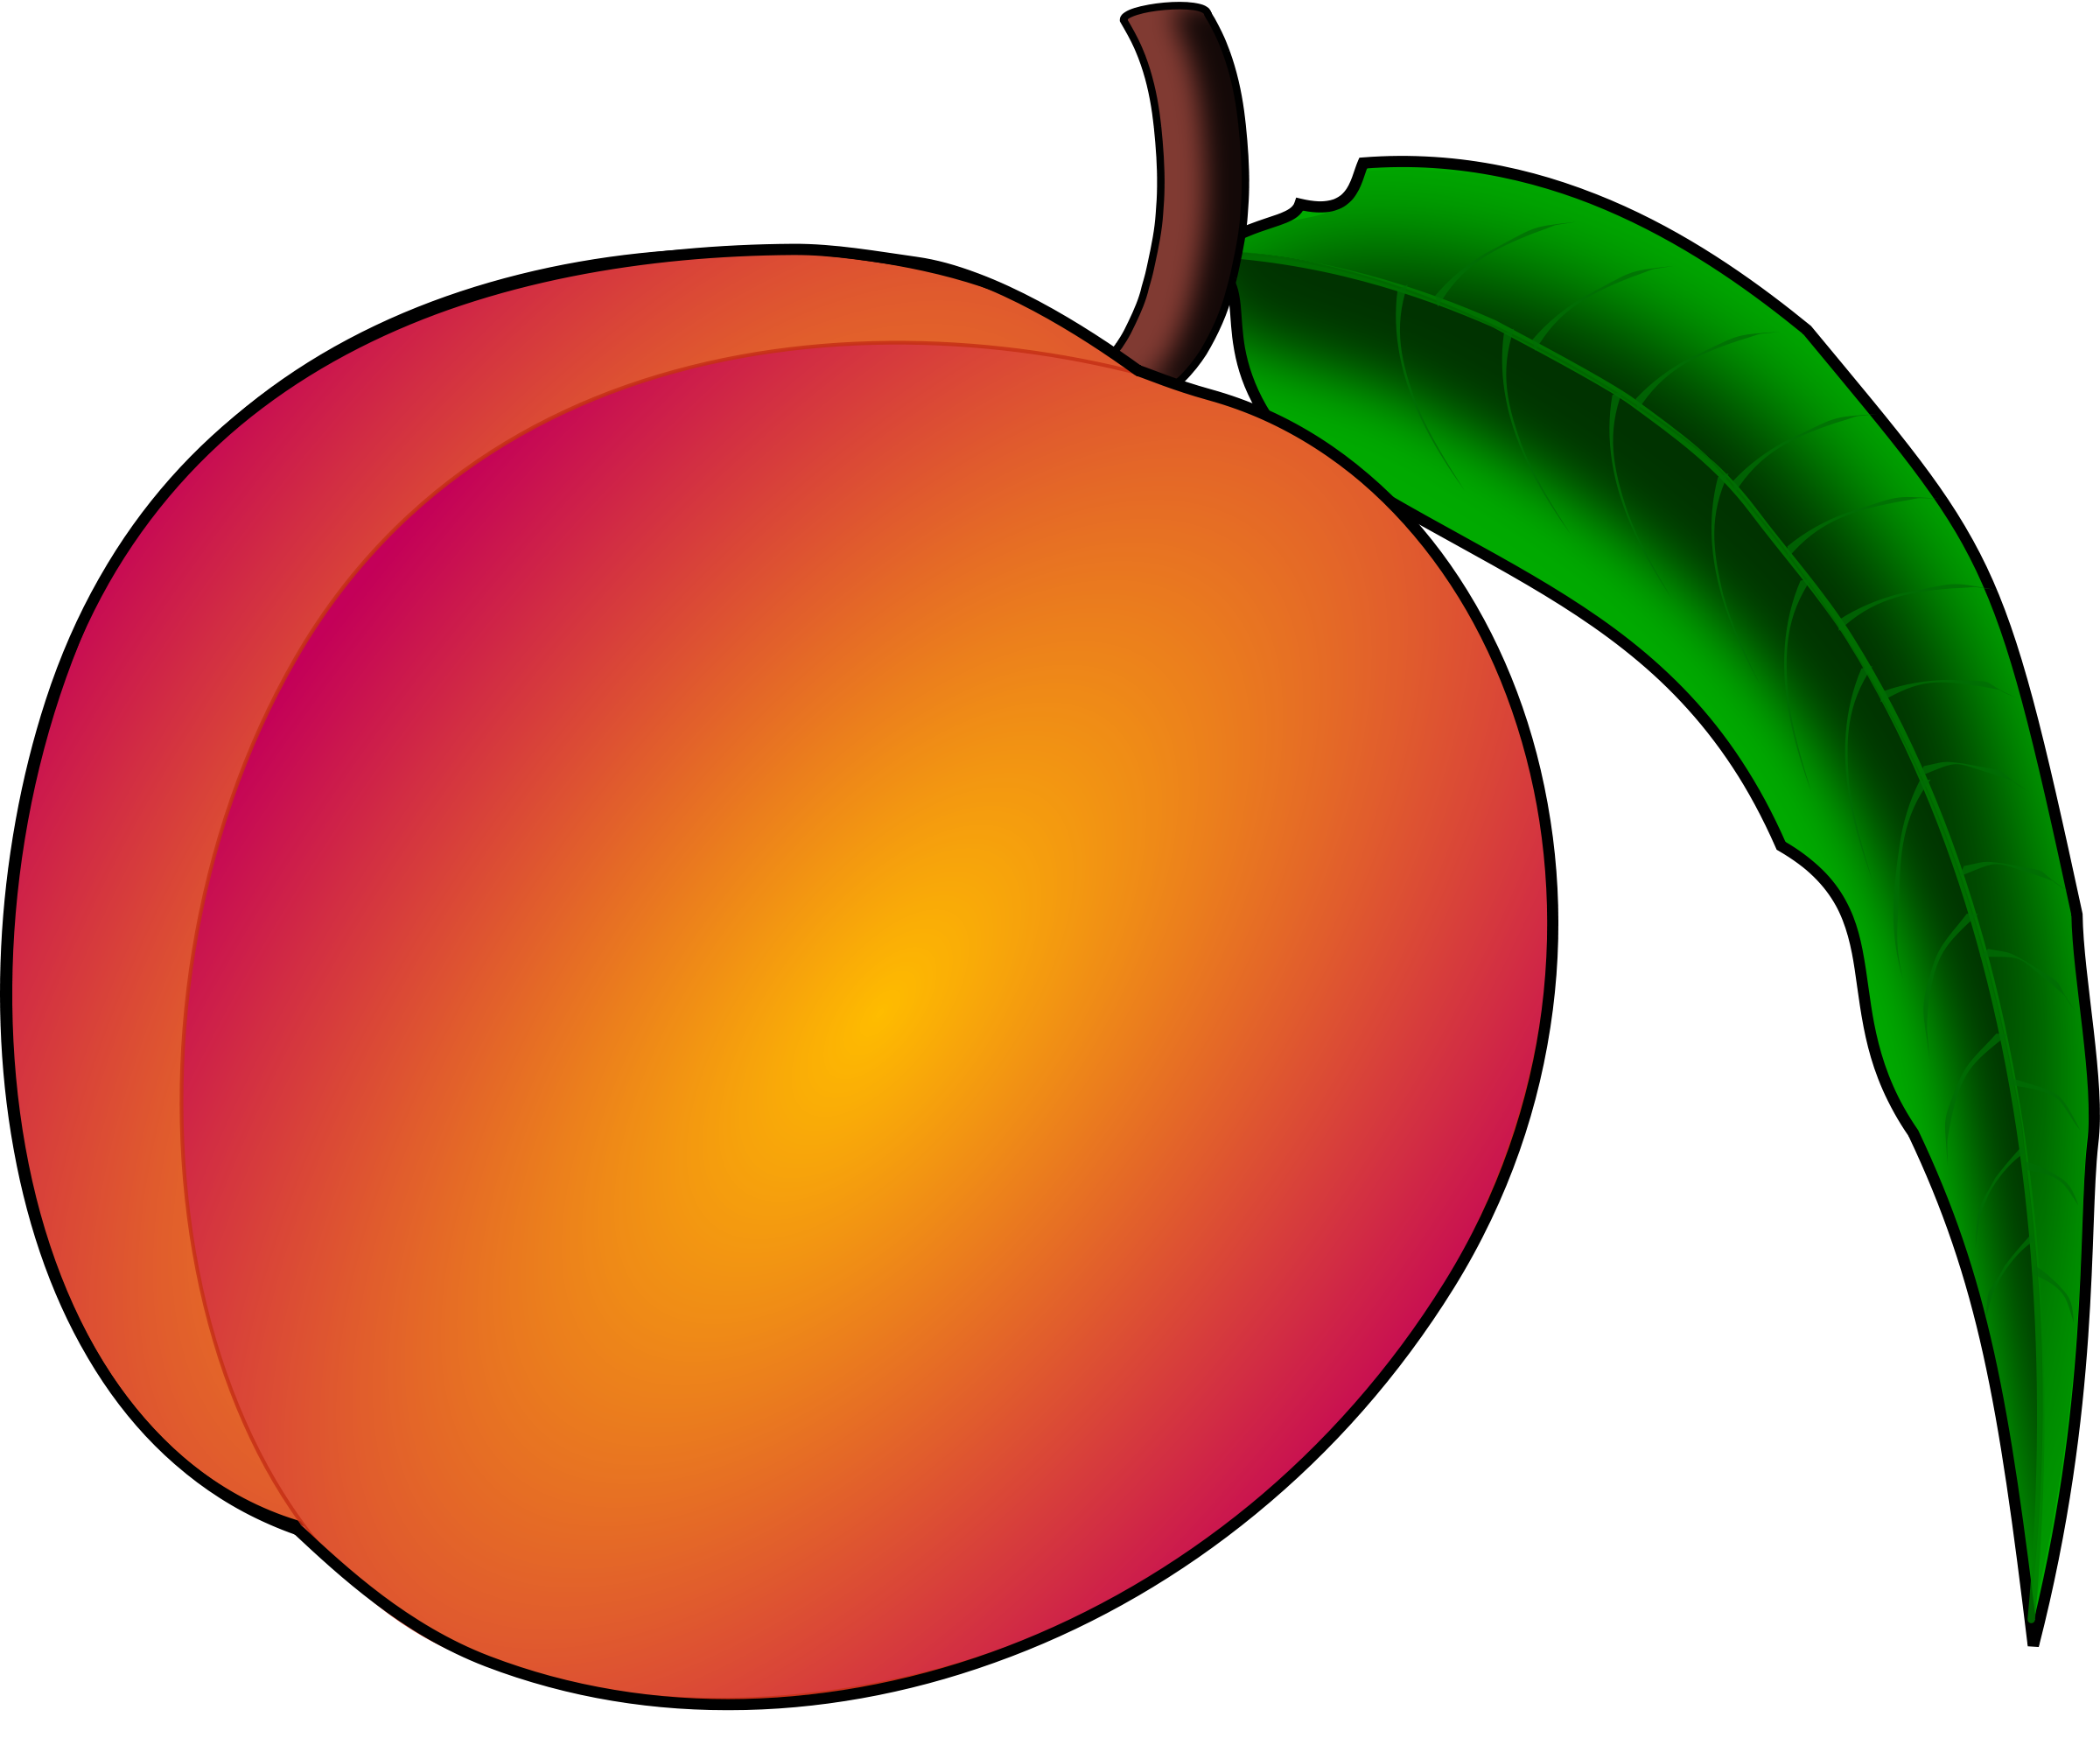 Peach clipart image beautiful drawing of a luscious delicious.